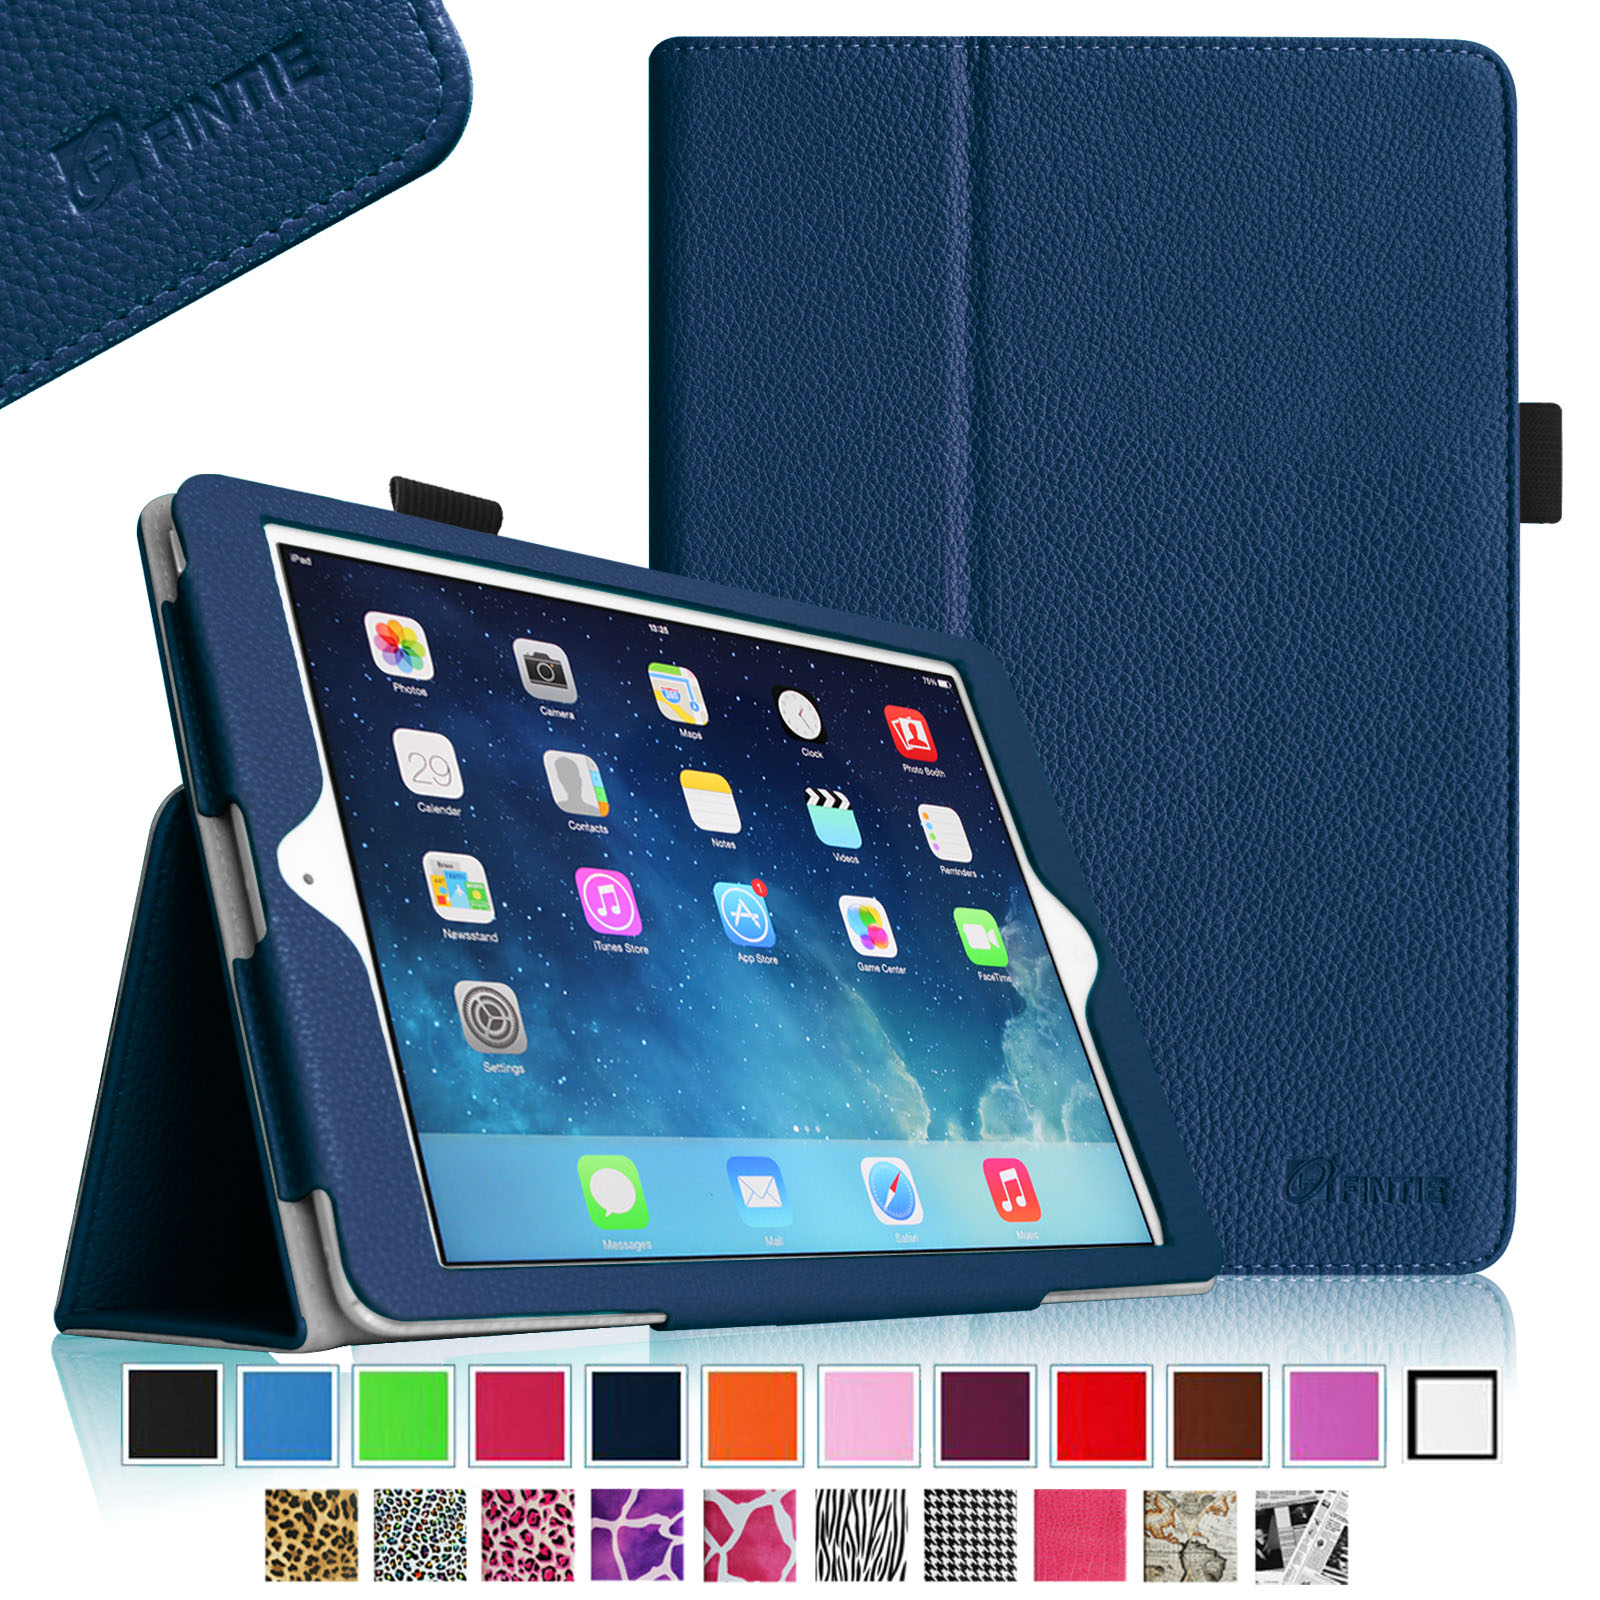 Fintie iPad Air (2013) Case - Premium PU Leather Folio Cover with Auto Sleep / Wake Feature, Navy